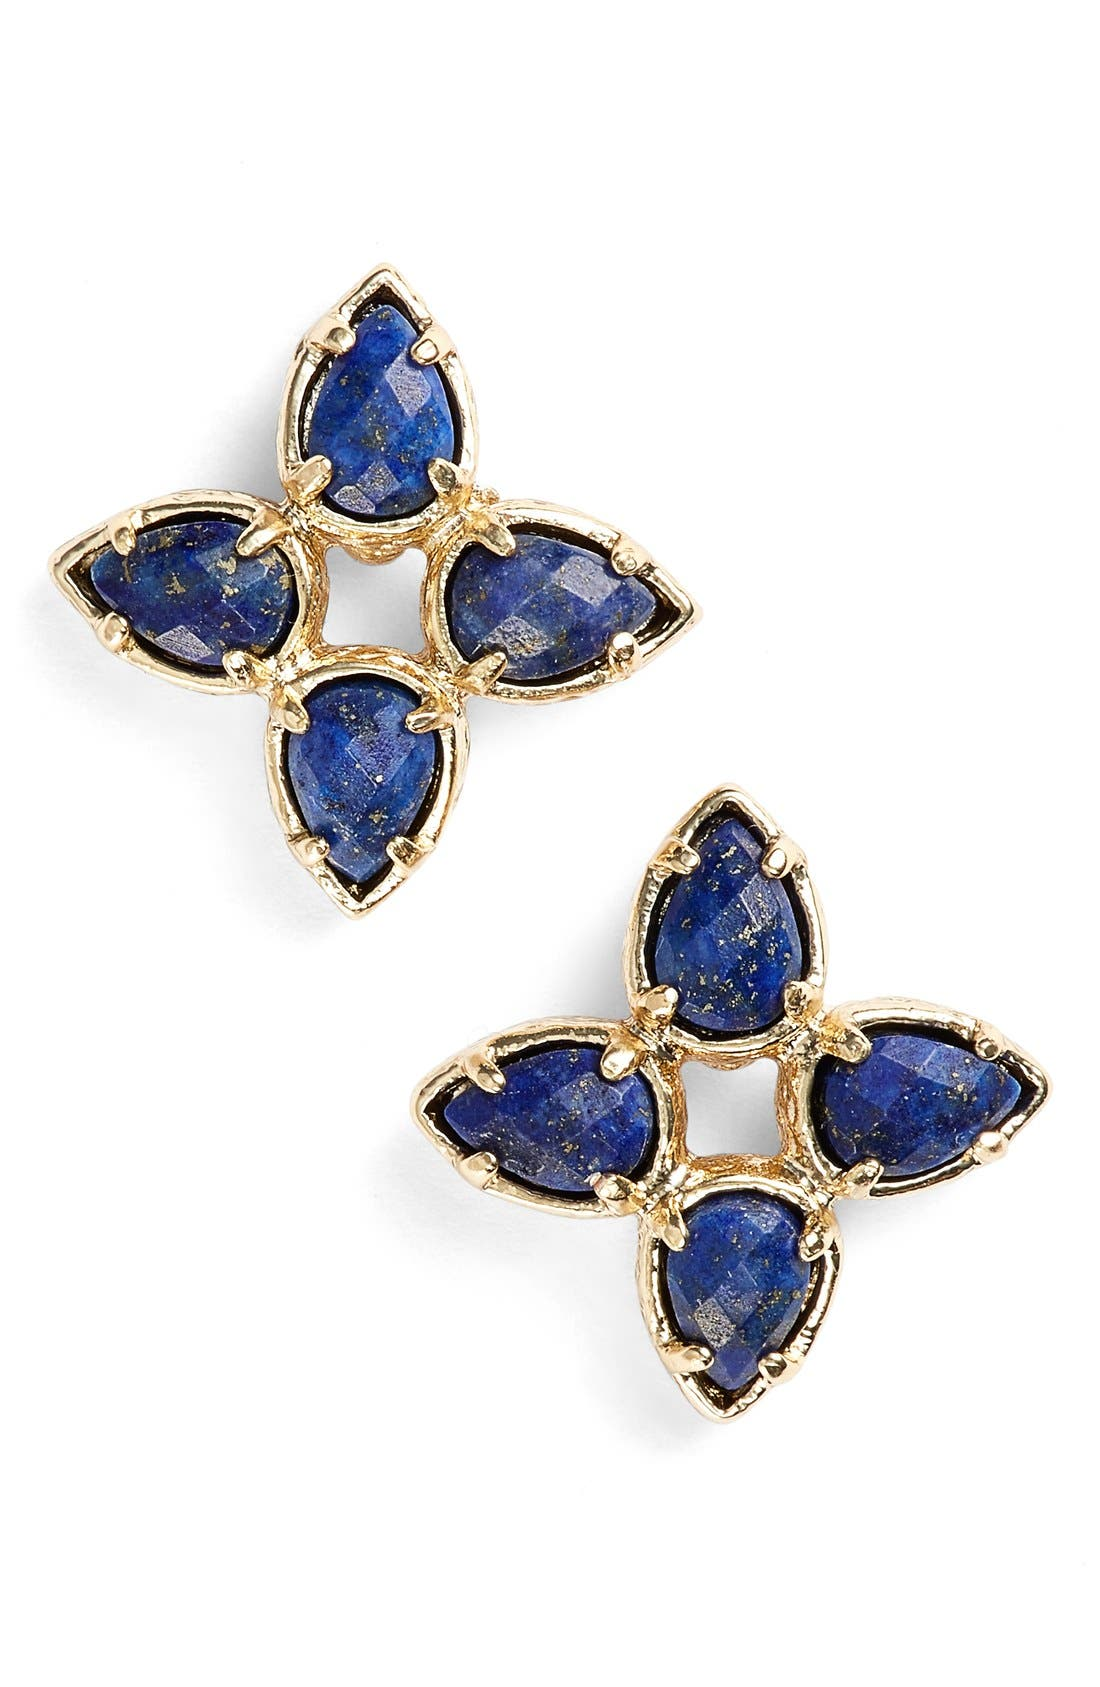 Alternate Image 1 Selected - Kendra Scott 'Tavi' Stud Earrings